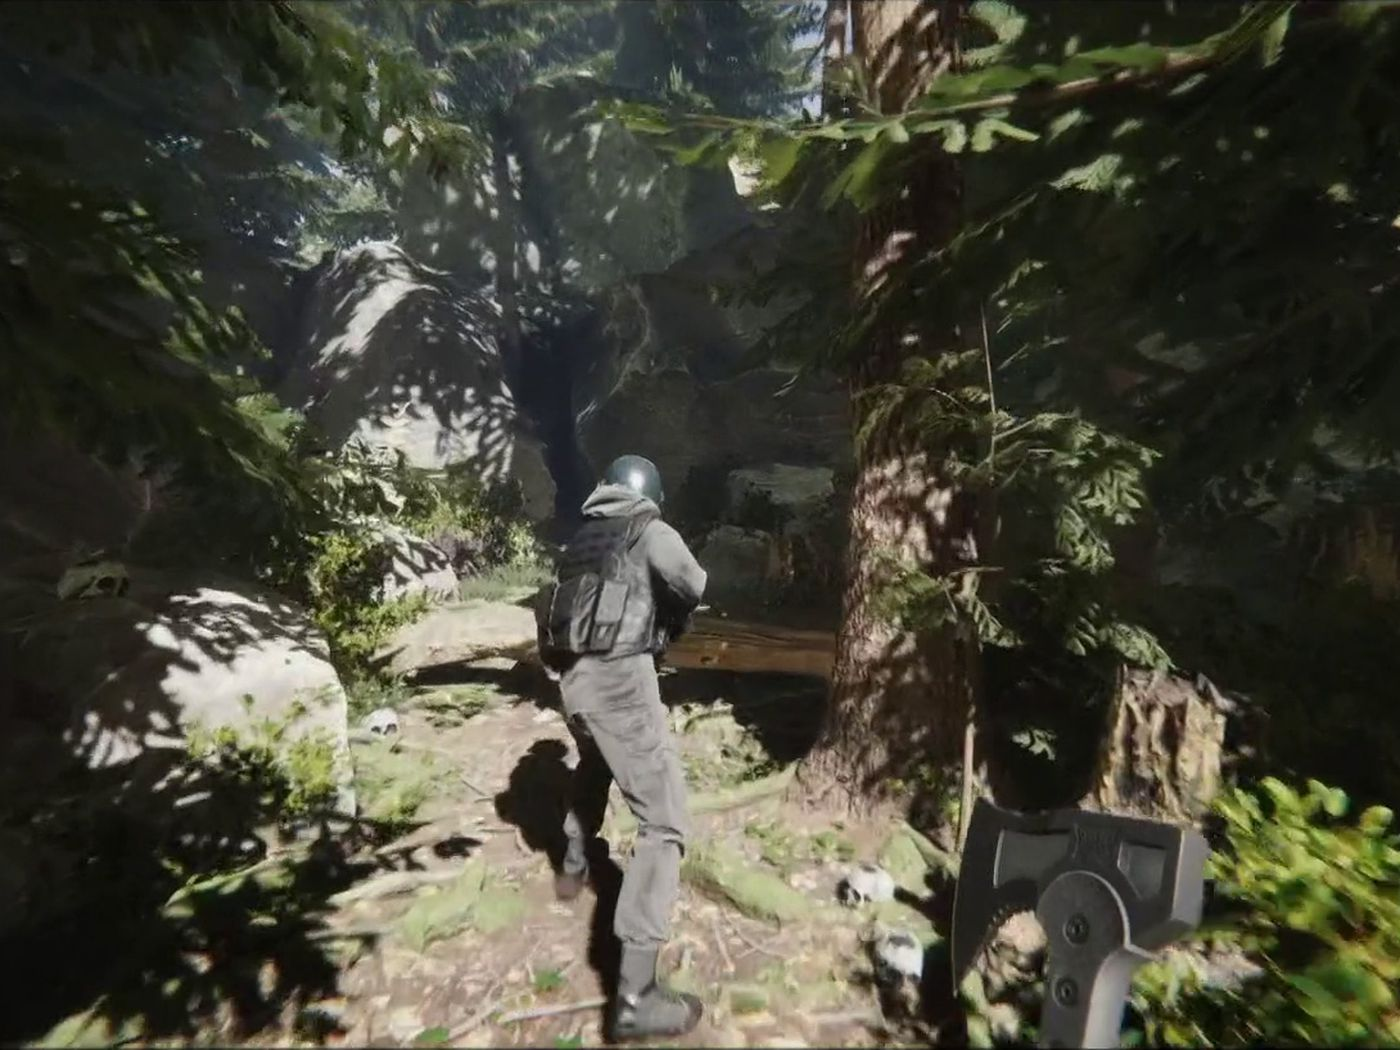 Endnight Reveals Sequel To The Forest Sons Of The Forest Polygon